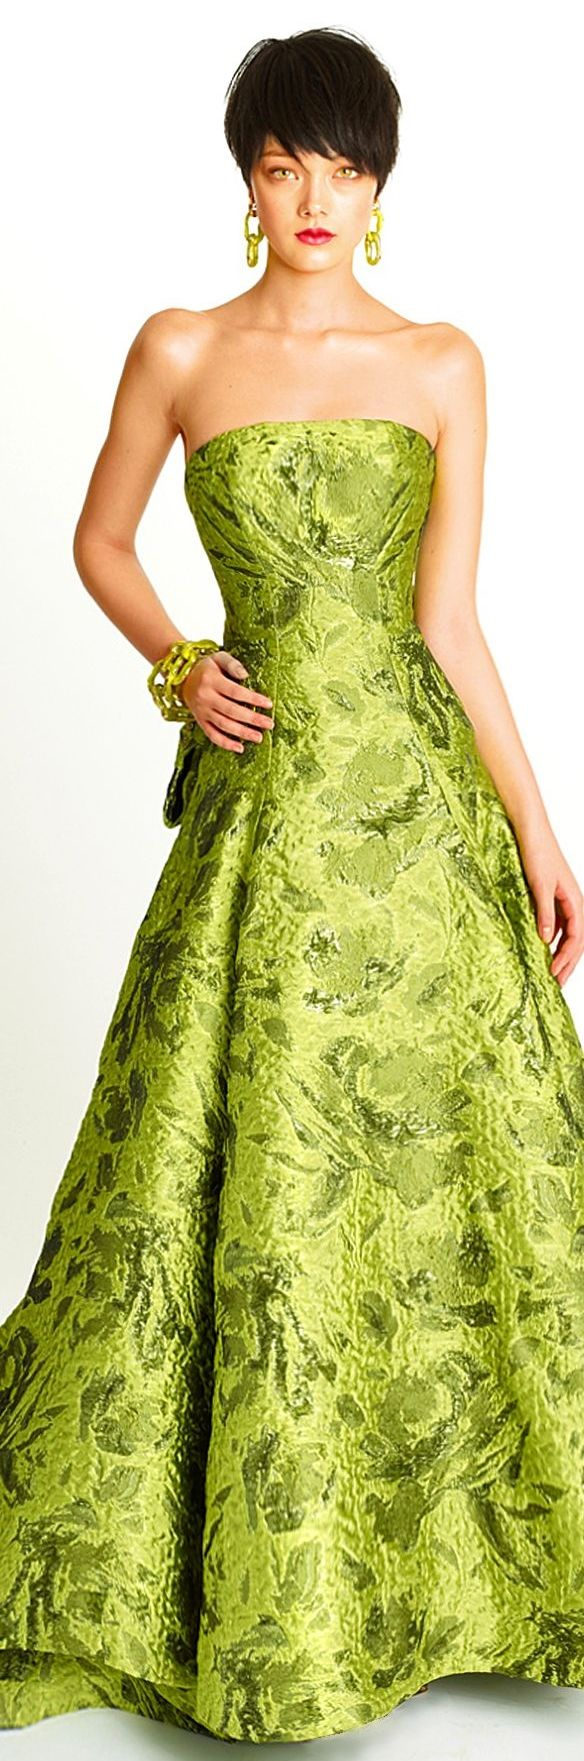 Oscar de la Renta Pre-Fall 2014. I know I've pinned this before. But it's just such a spectacular gown that I couldn't help myself from pinning it again.